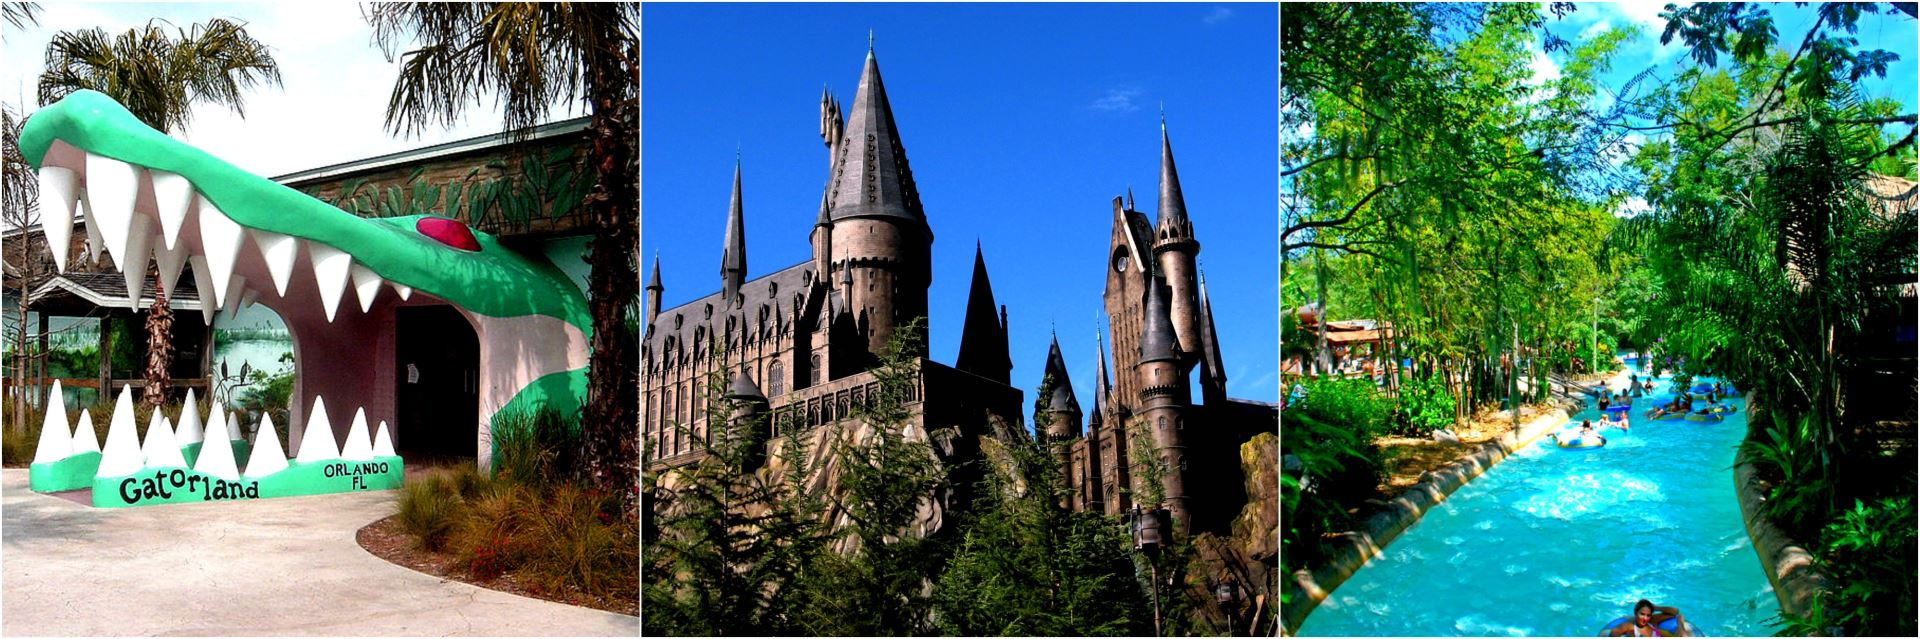 Universal Orlando Resort. Enter The Wizarding World of Harry Potter™—two lands of groundbreaking thrills and magical fun in Universal's Islands of Adventure™ and Universal .